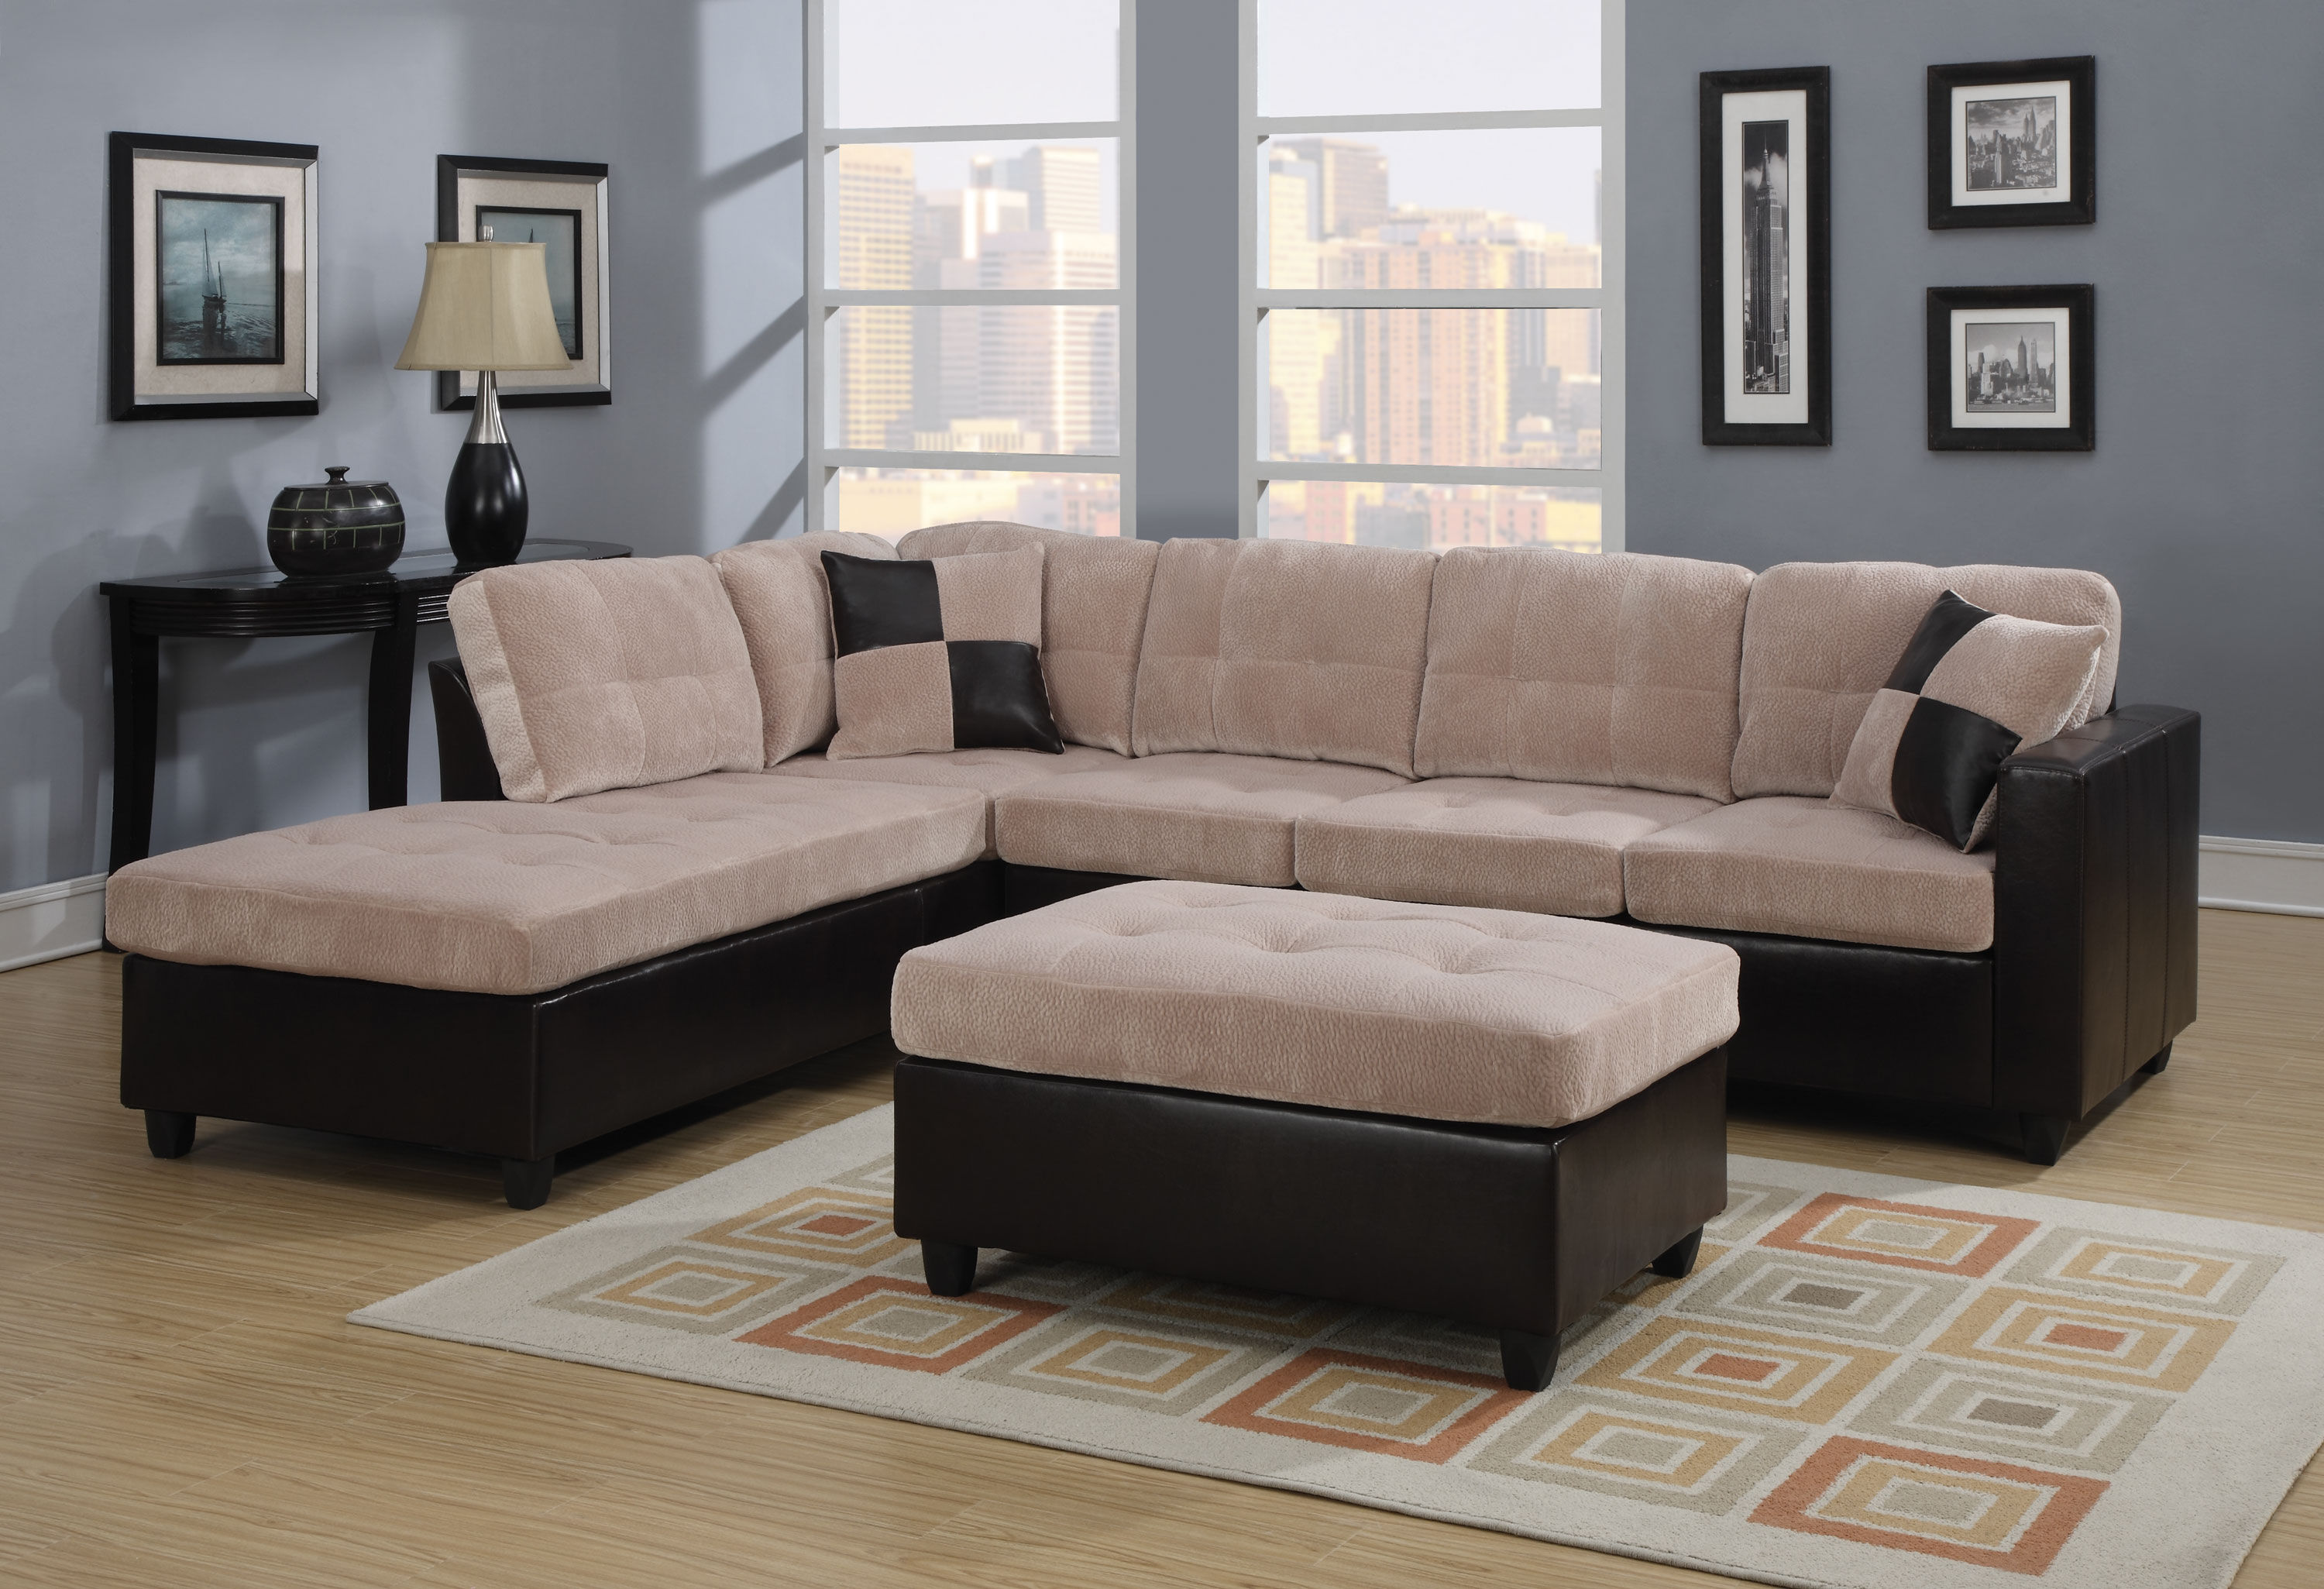 Mallory casual microfiber living room set the classy home - Microfiber living room furniture sets ...